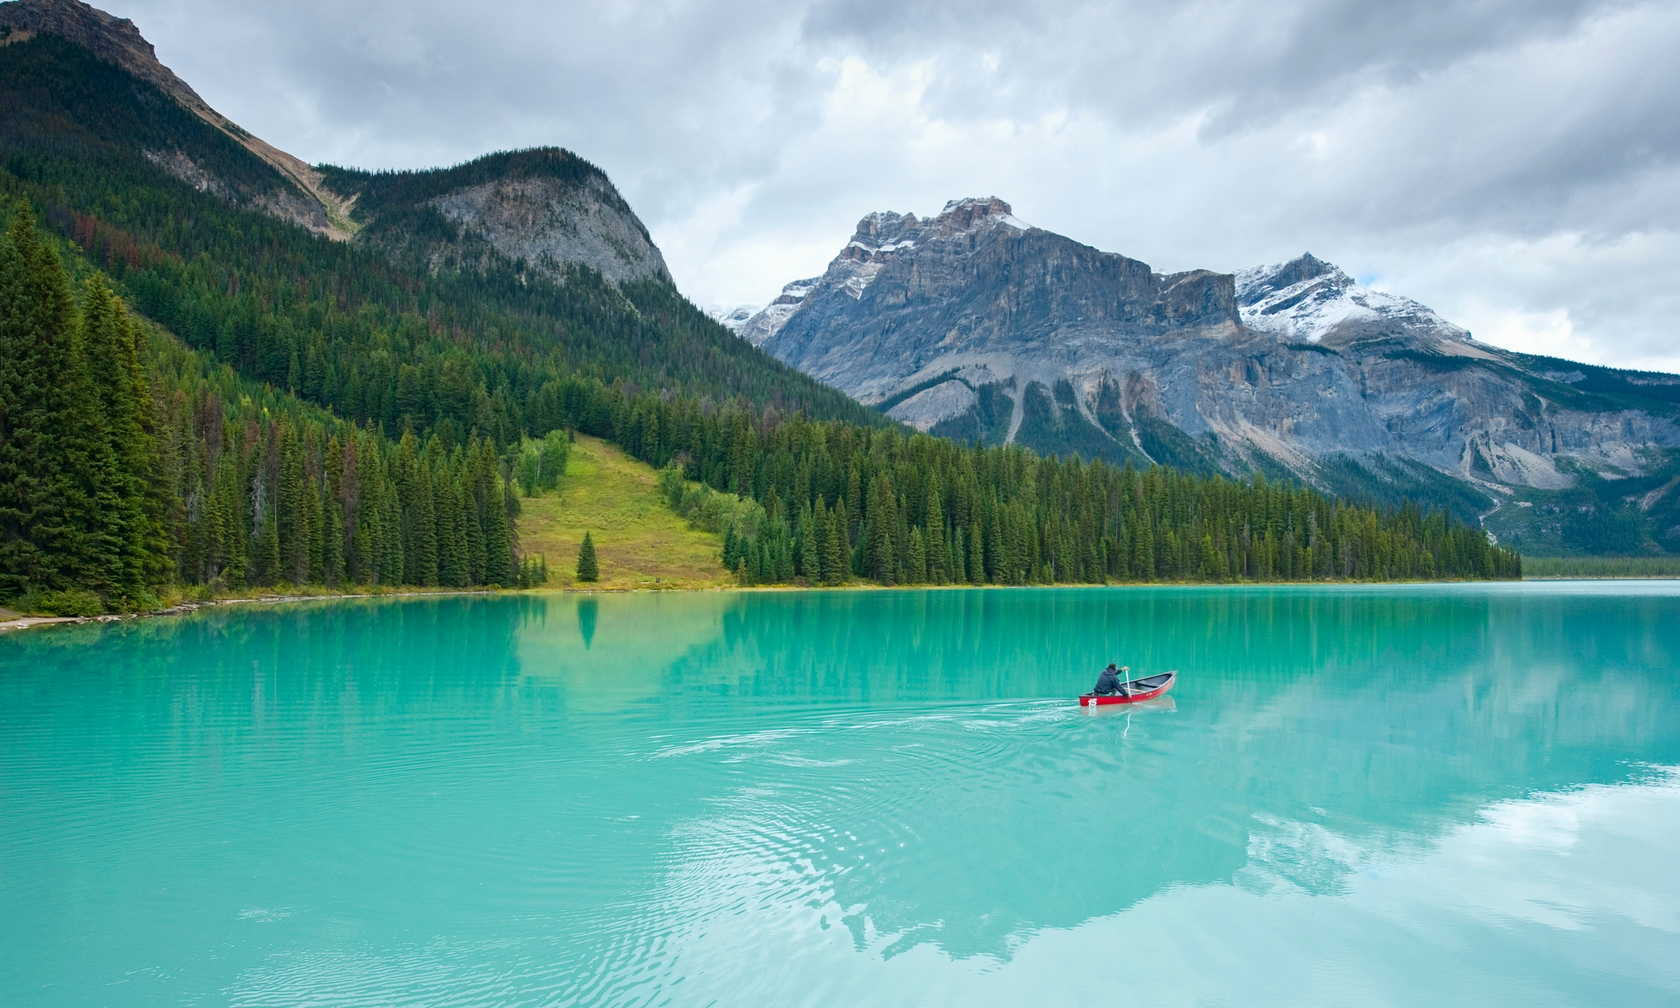 Vacation rentals in Emerald Lake